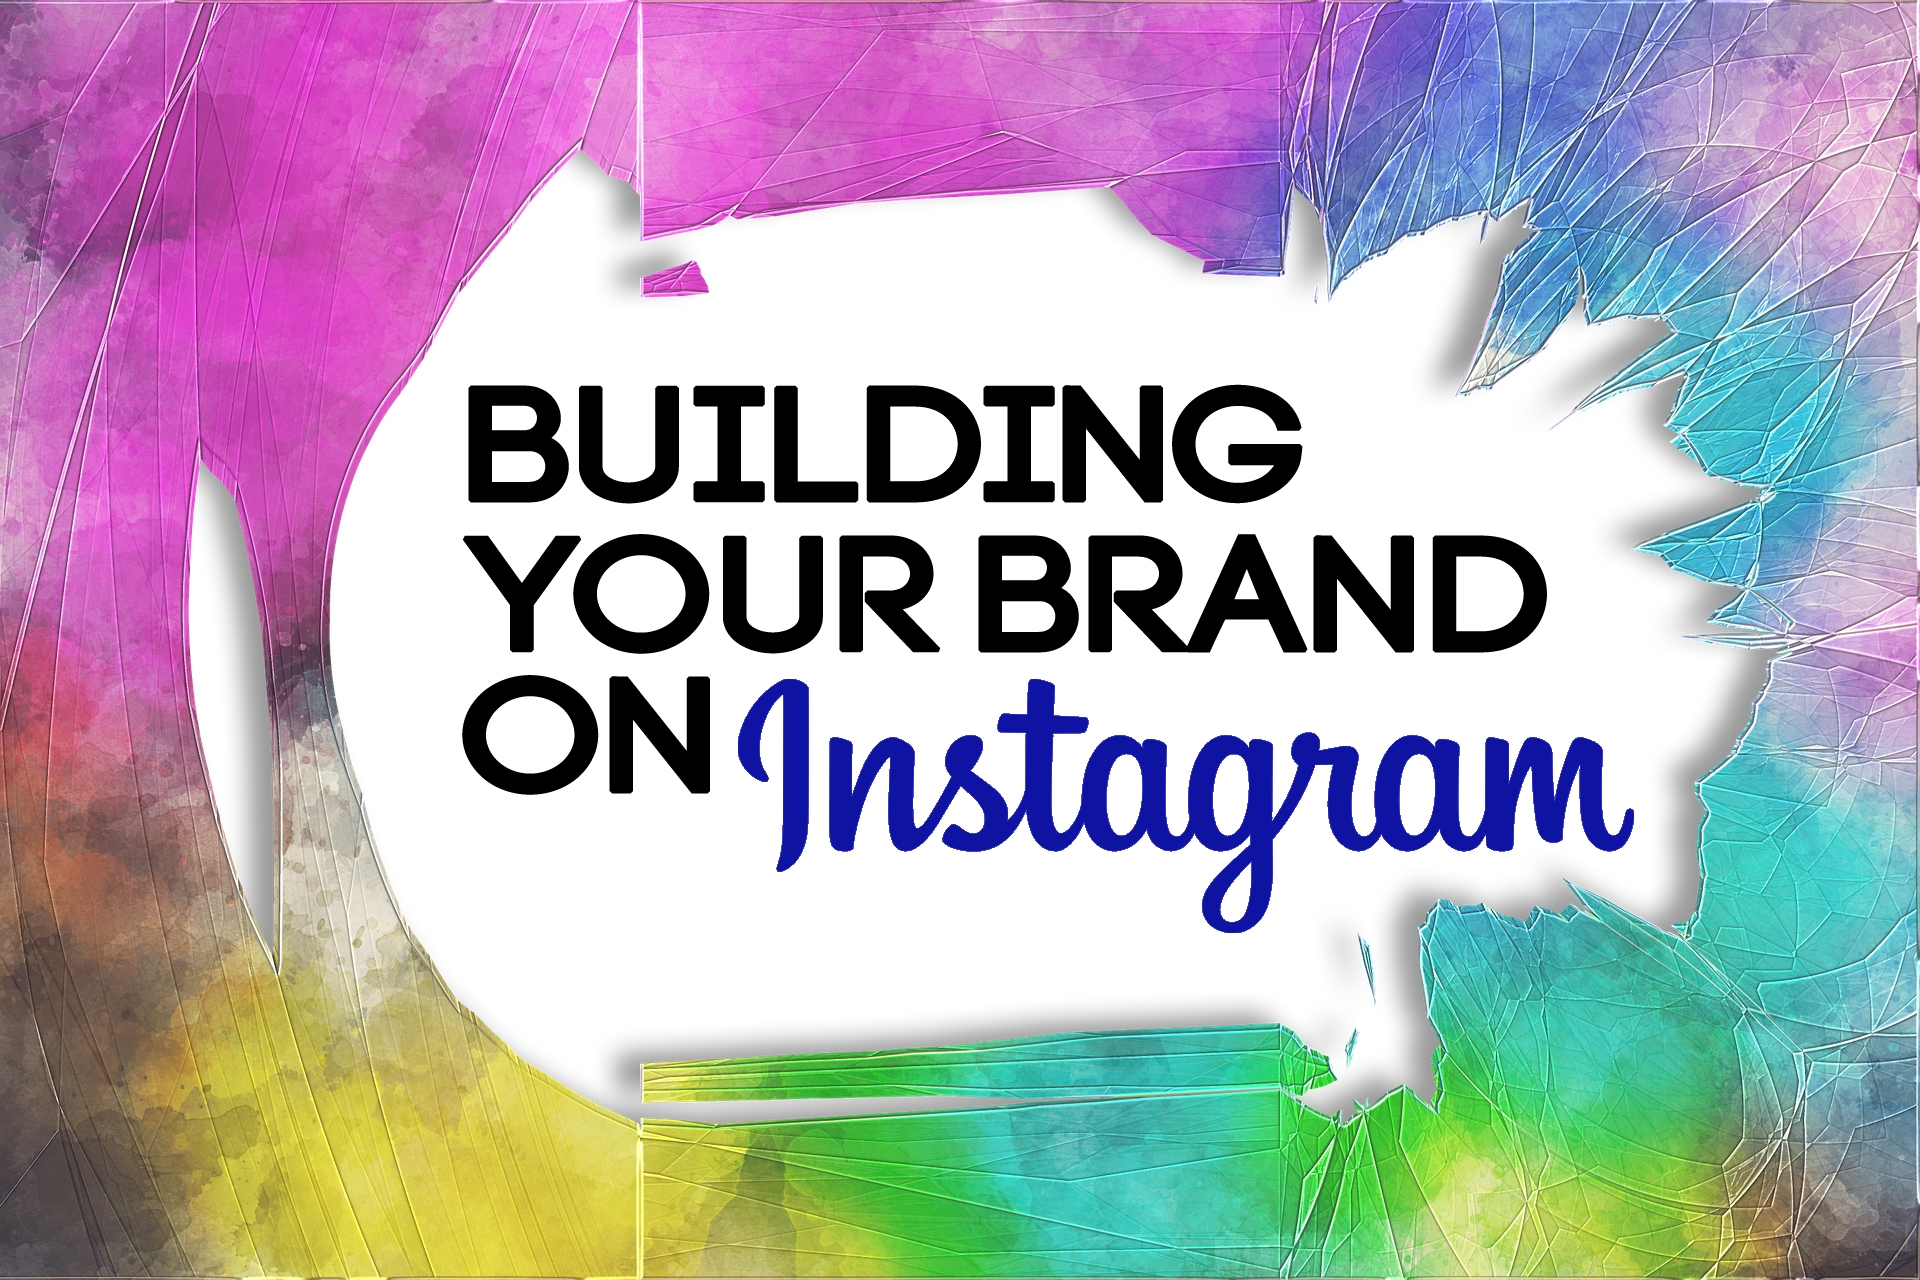 Building Your Brand On Instagram